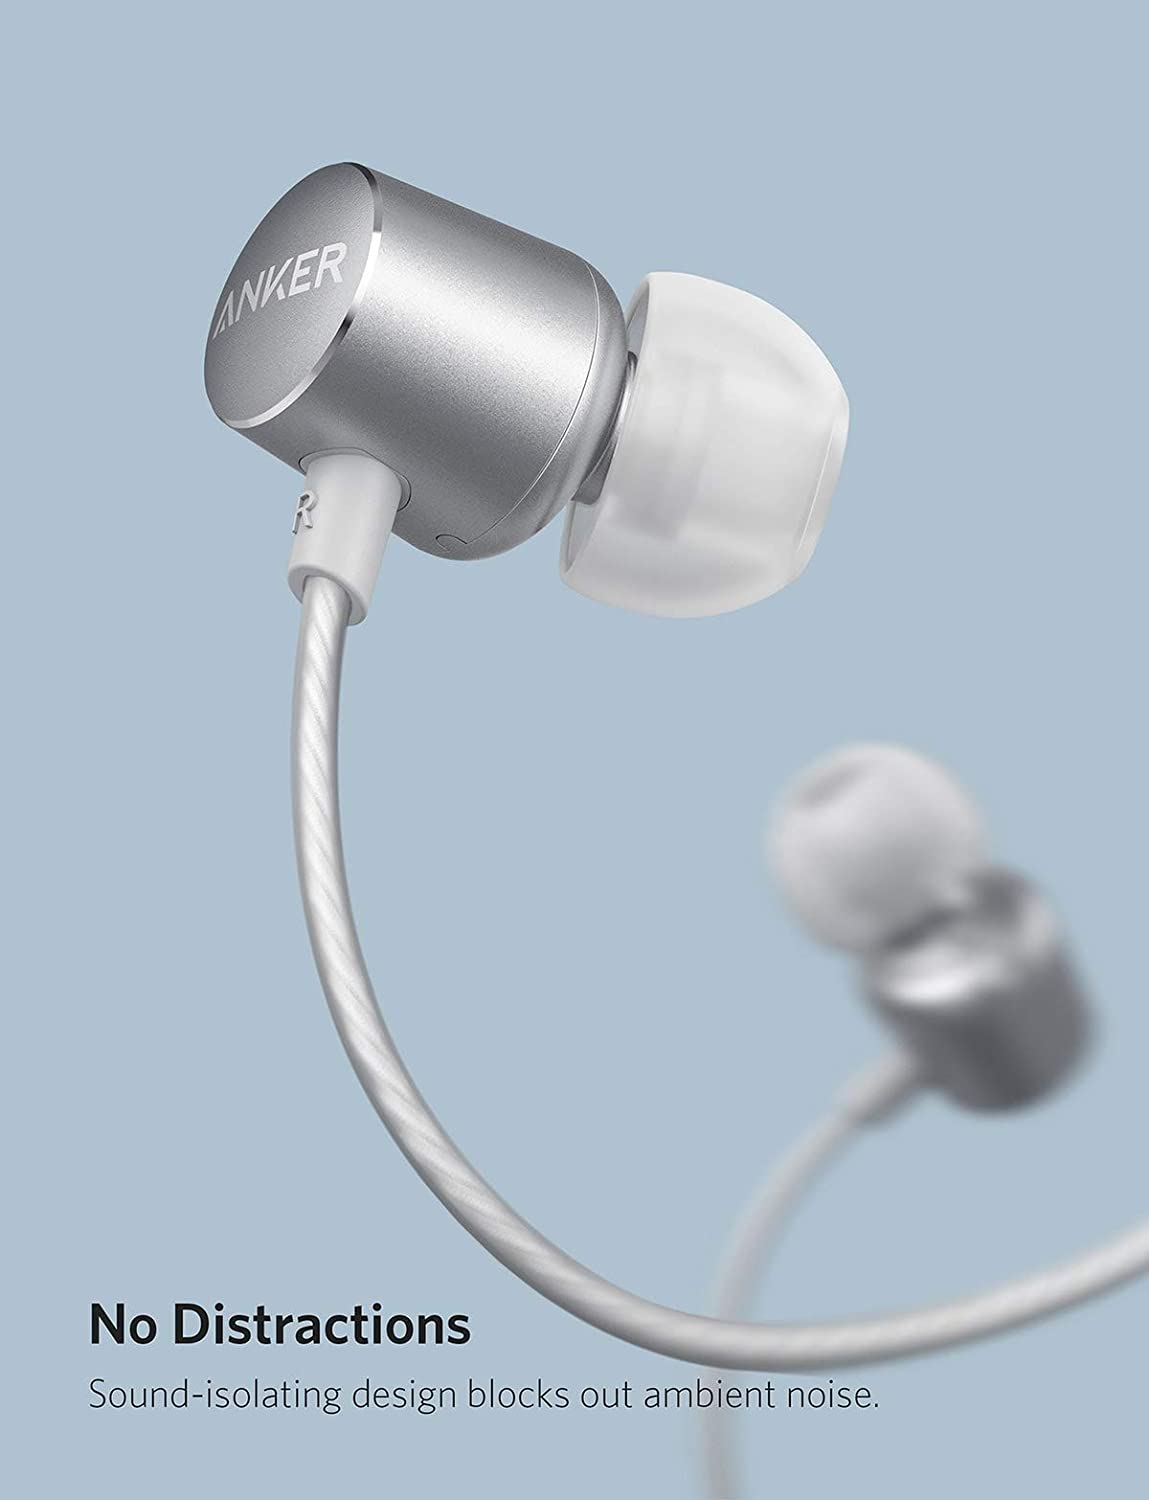 c3bbc5afd9c Anker SoundBuds Verve Earphones with Microphone, Wired: Amazon.co.uk:  Electronics